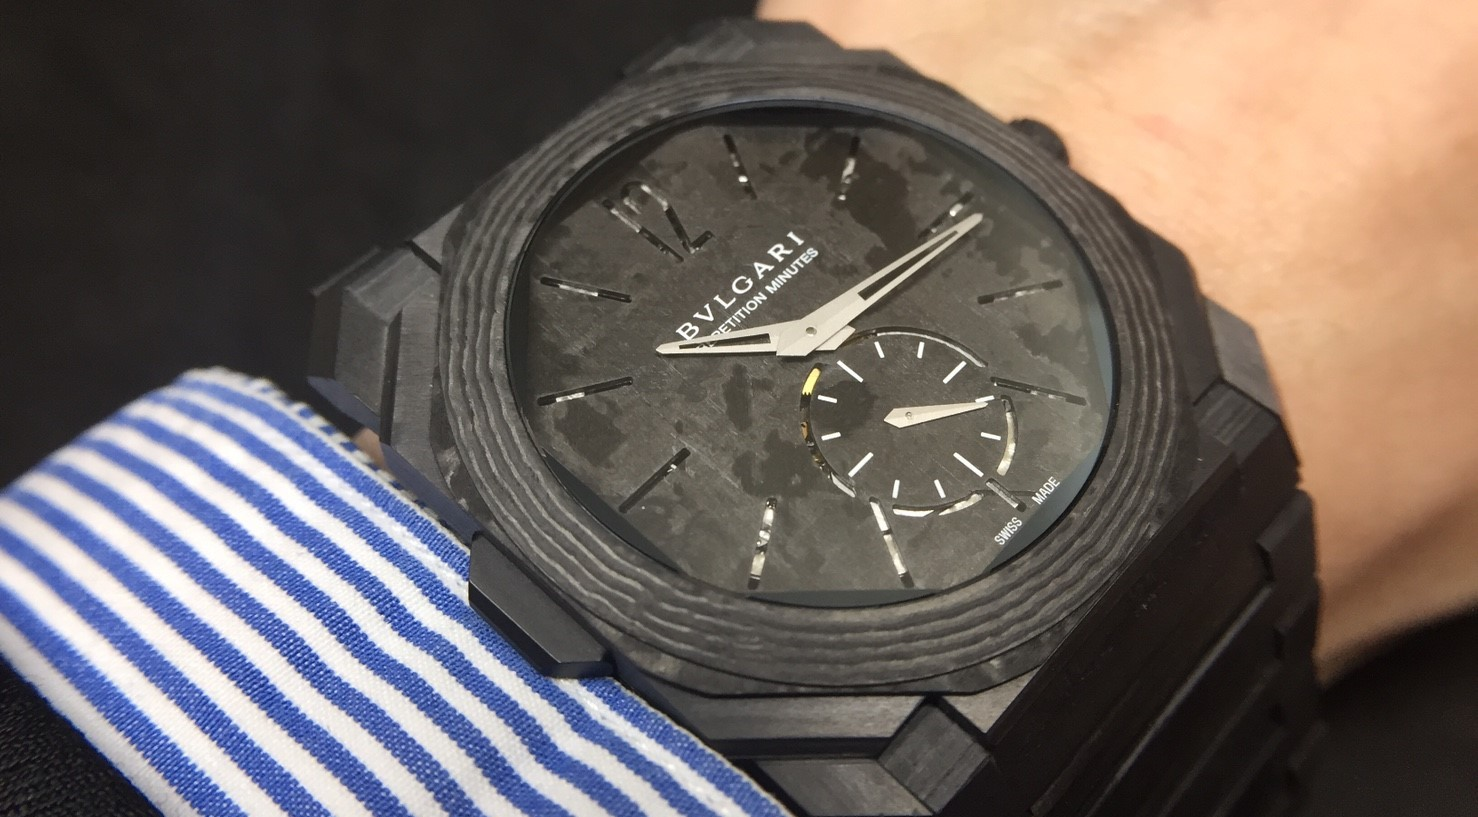 【Baselworld 2018現場直擊】寶格麗Octo Finissimo Minute Repeater Carbon三問錶